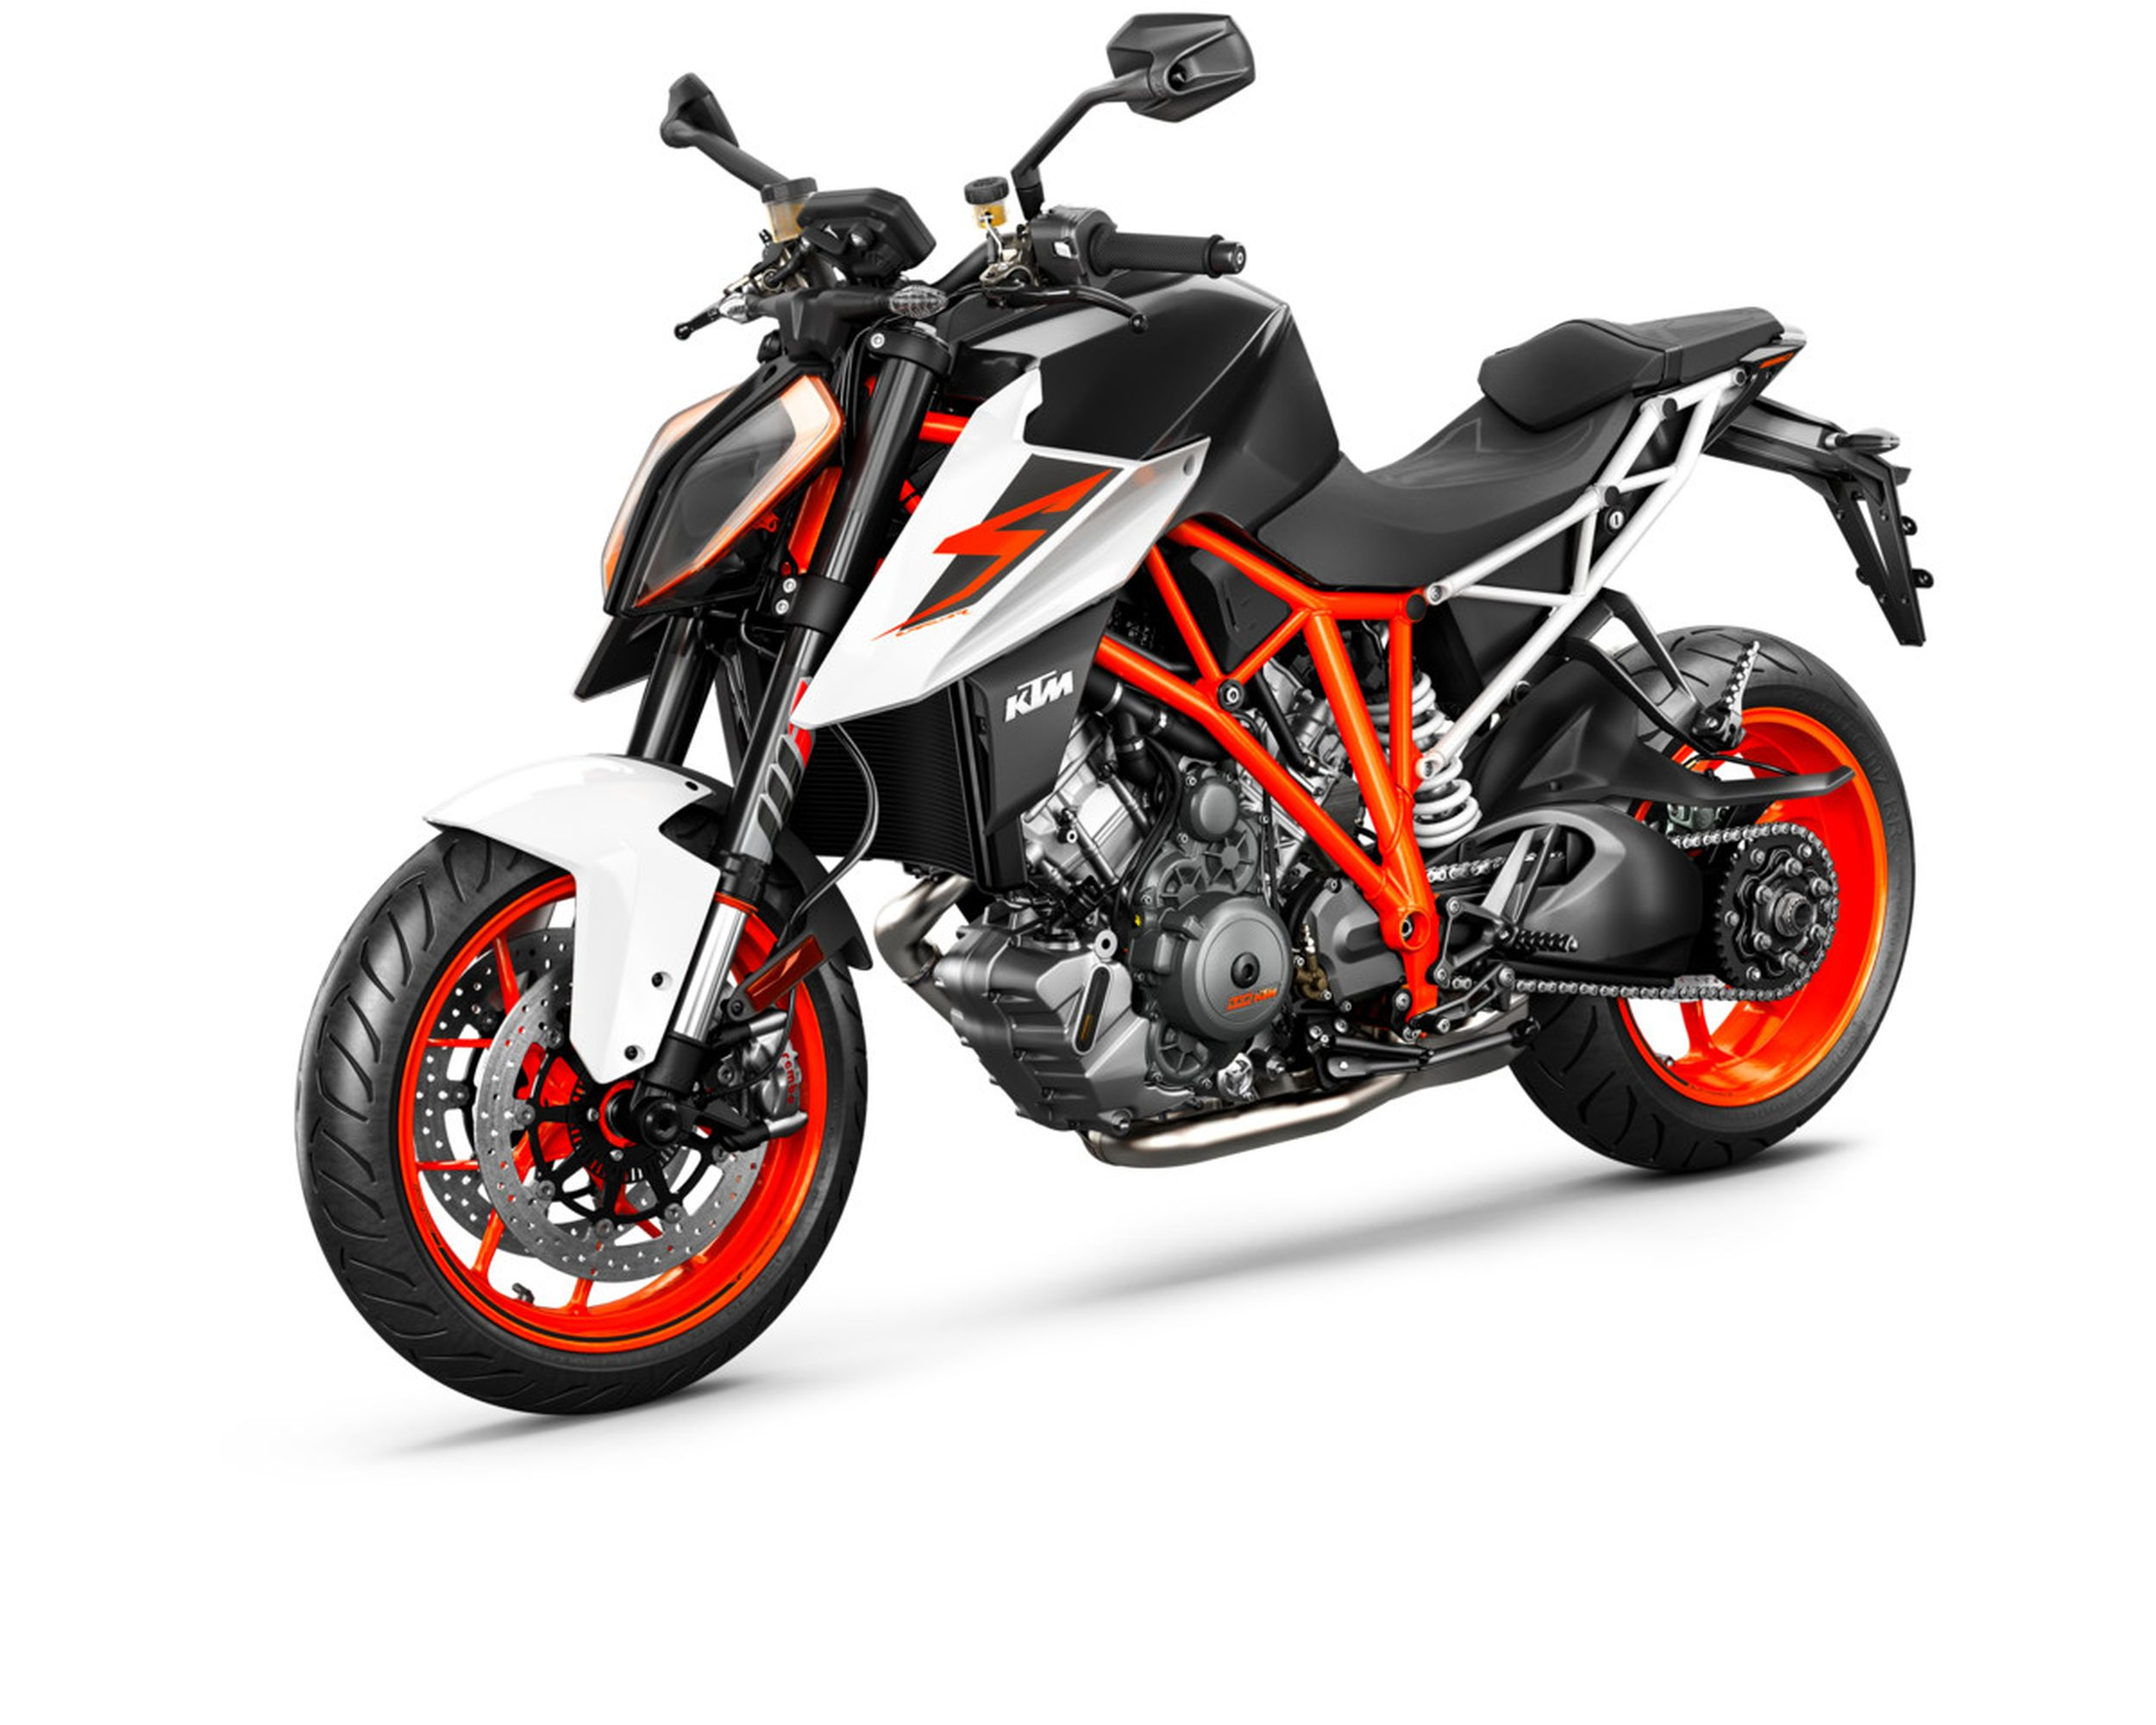 moped moped ktm 1290 super duke r test gebrauchte. Black Bedroom Furniture Sets. Home Design Ideas